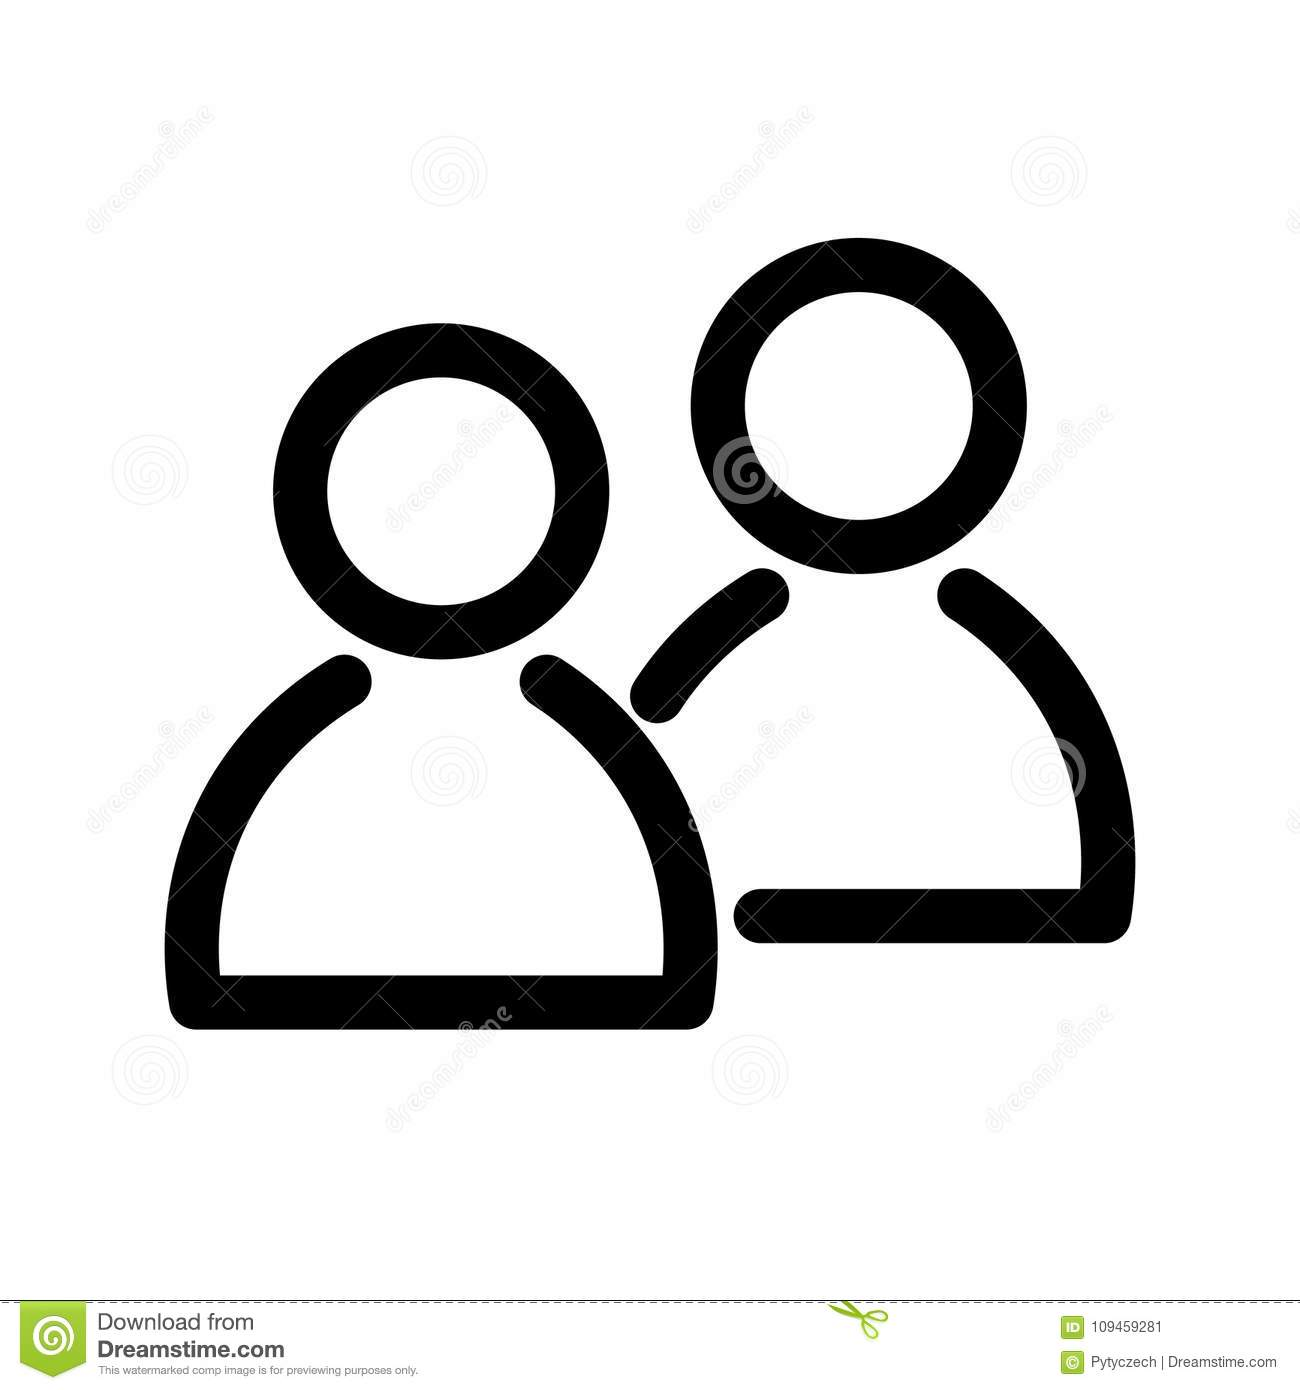 Two people icon. Symbol of group or pair of persons, friends, contacts, users. Outline modern design element. Simple